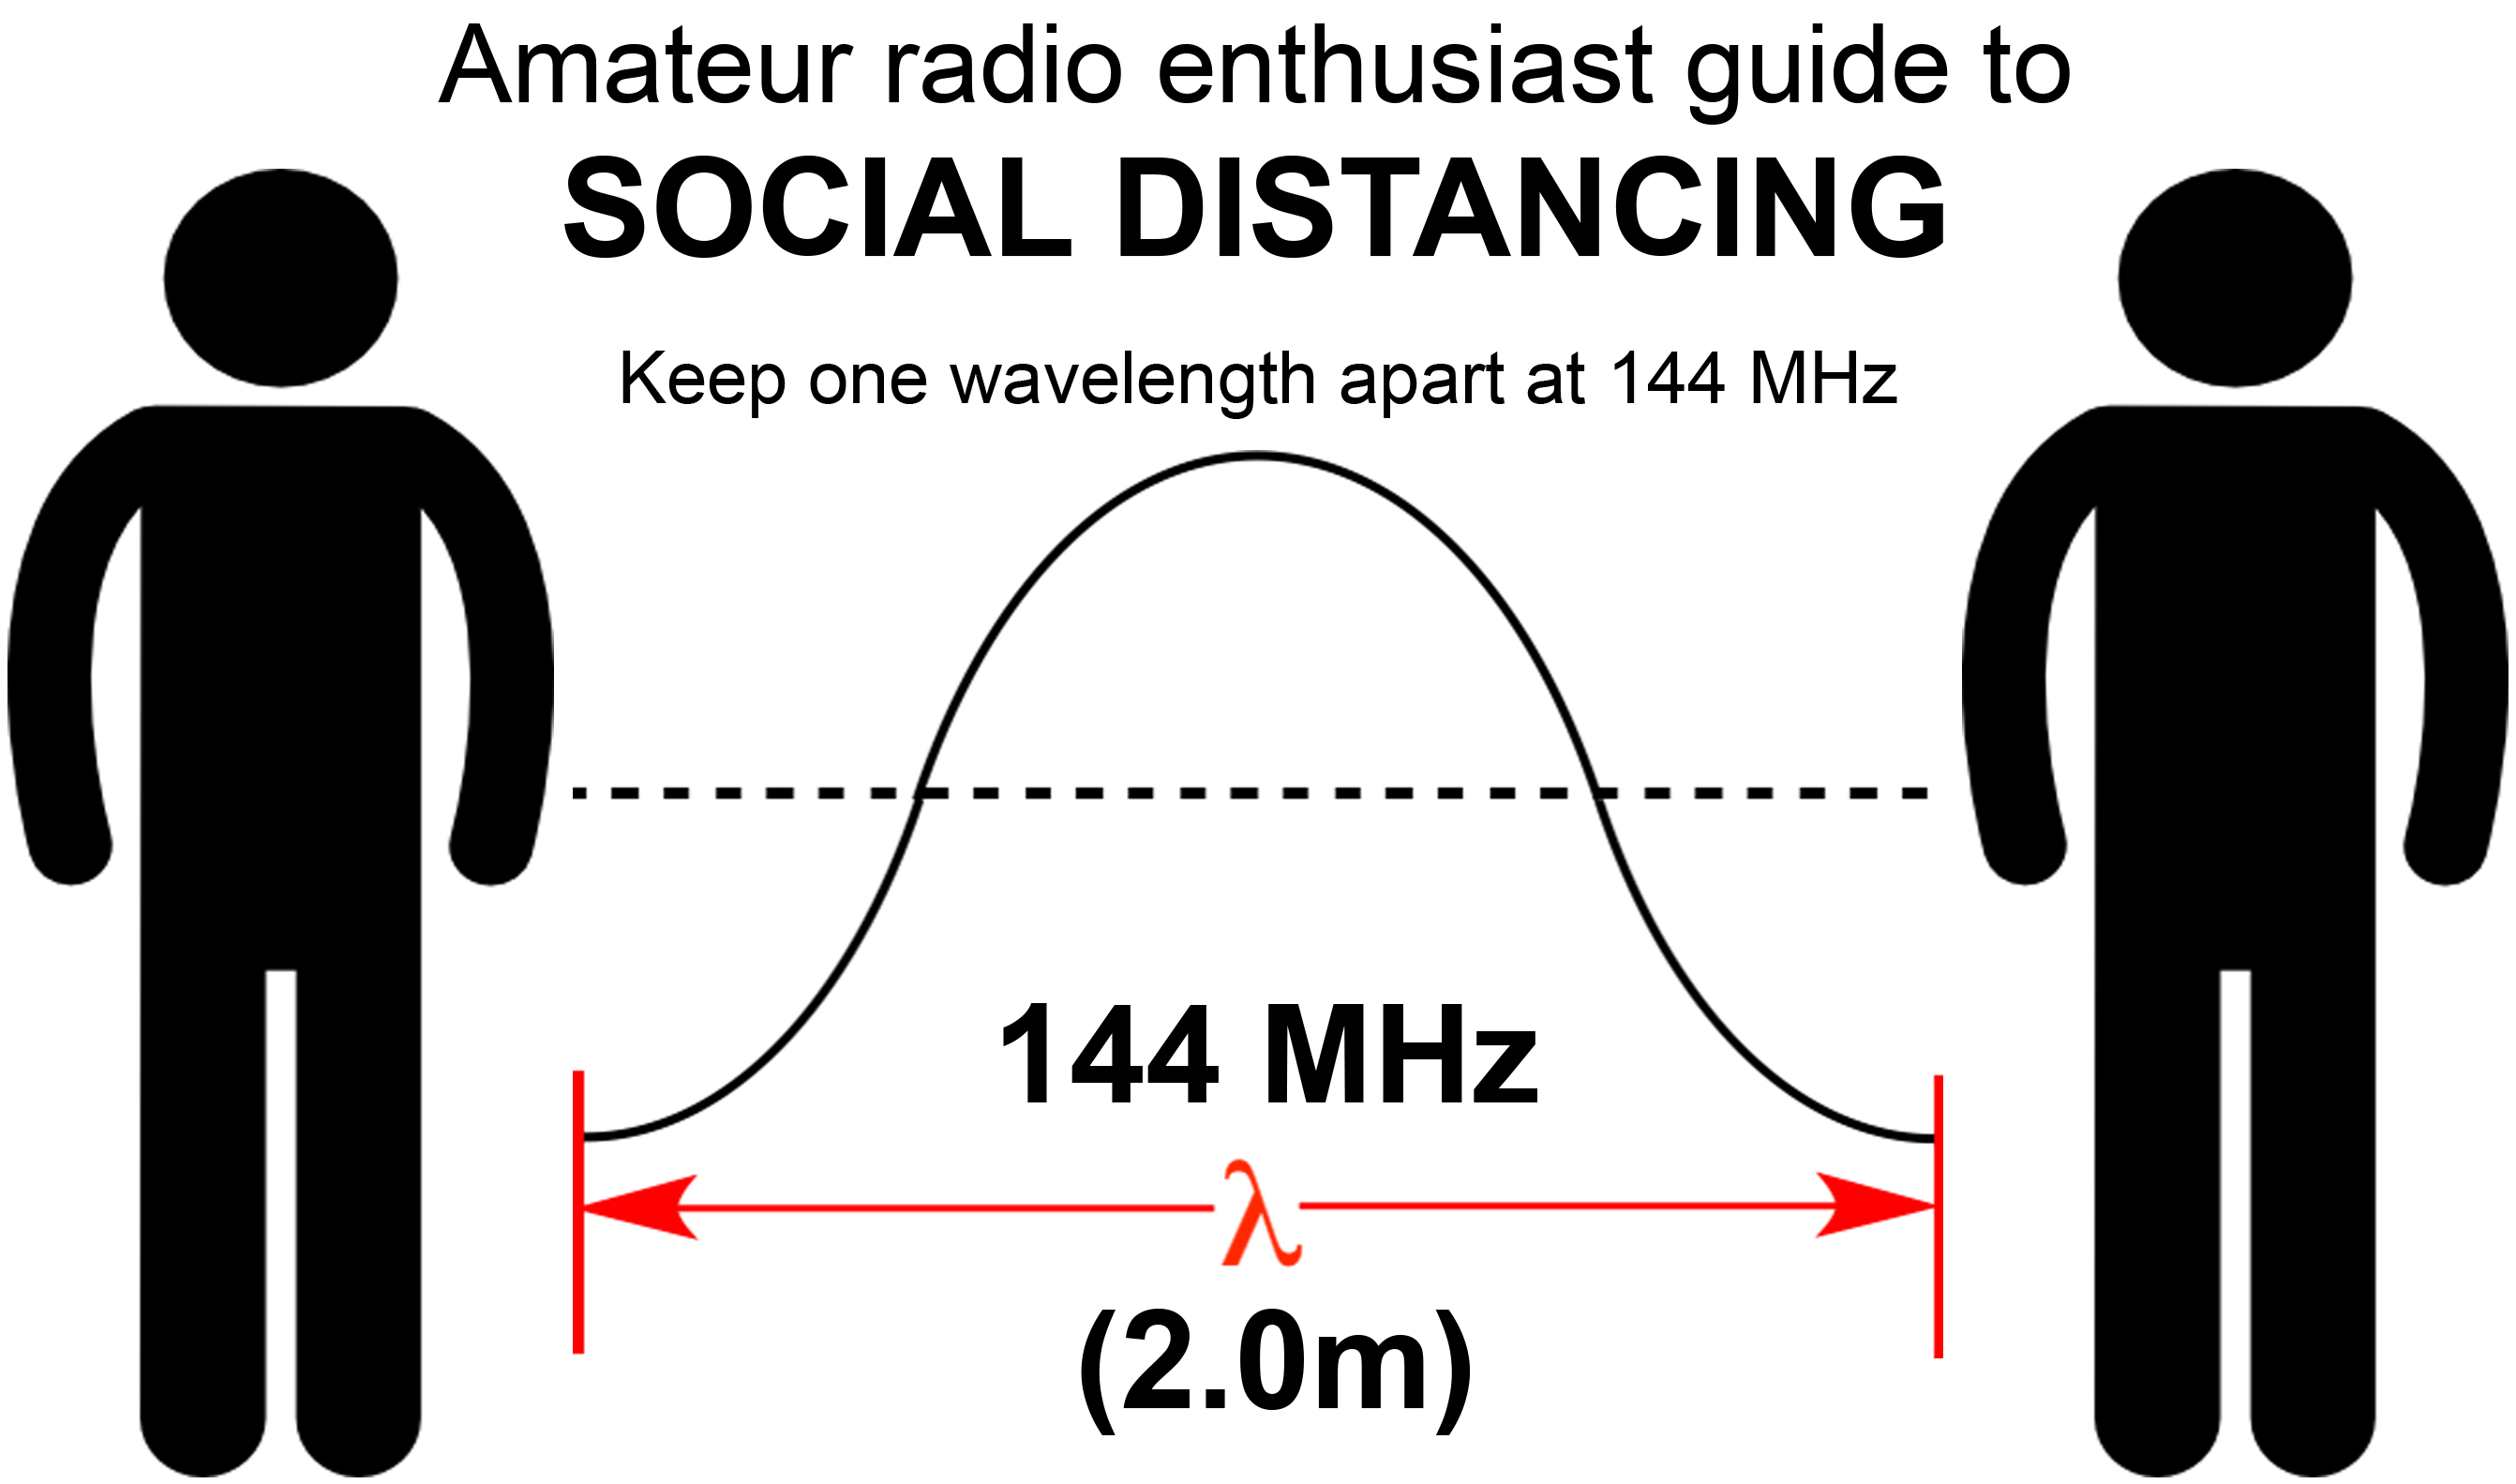 Photo of 2 meter wavelength as guide to social distancing.